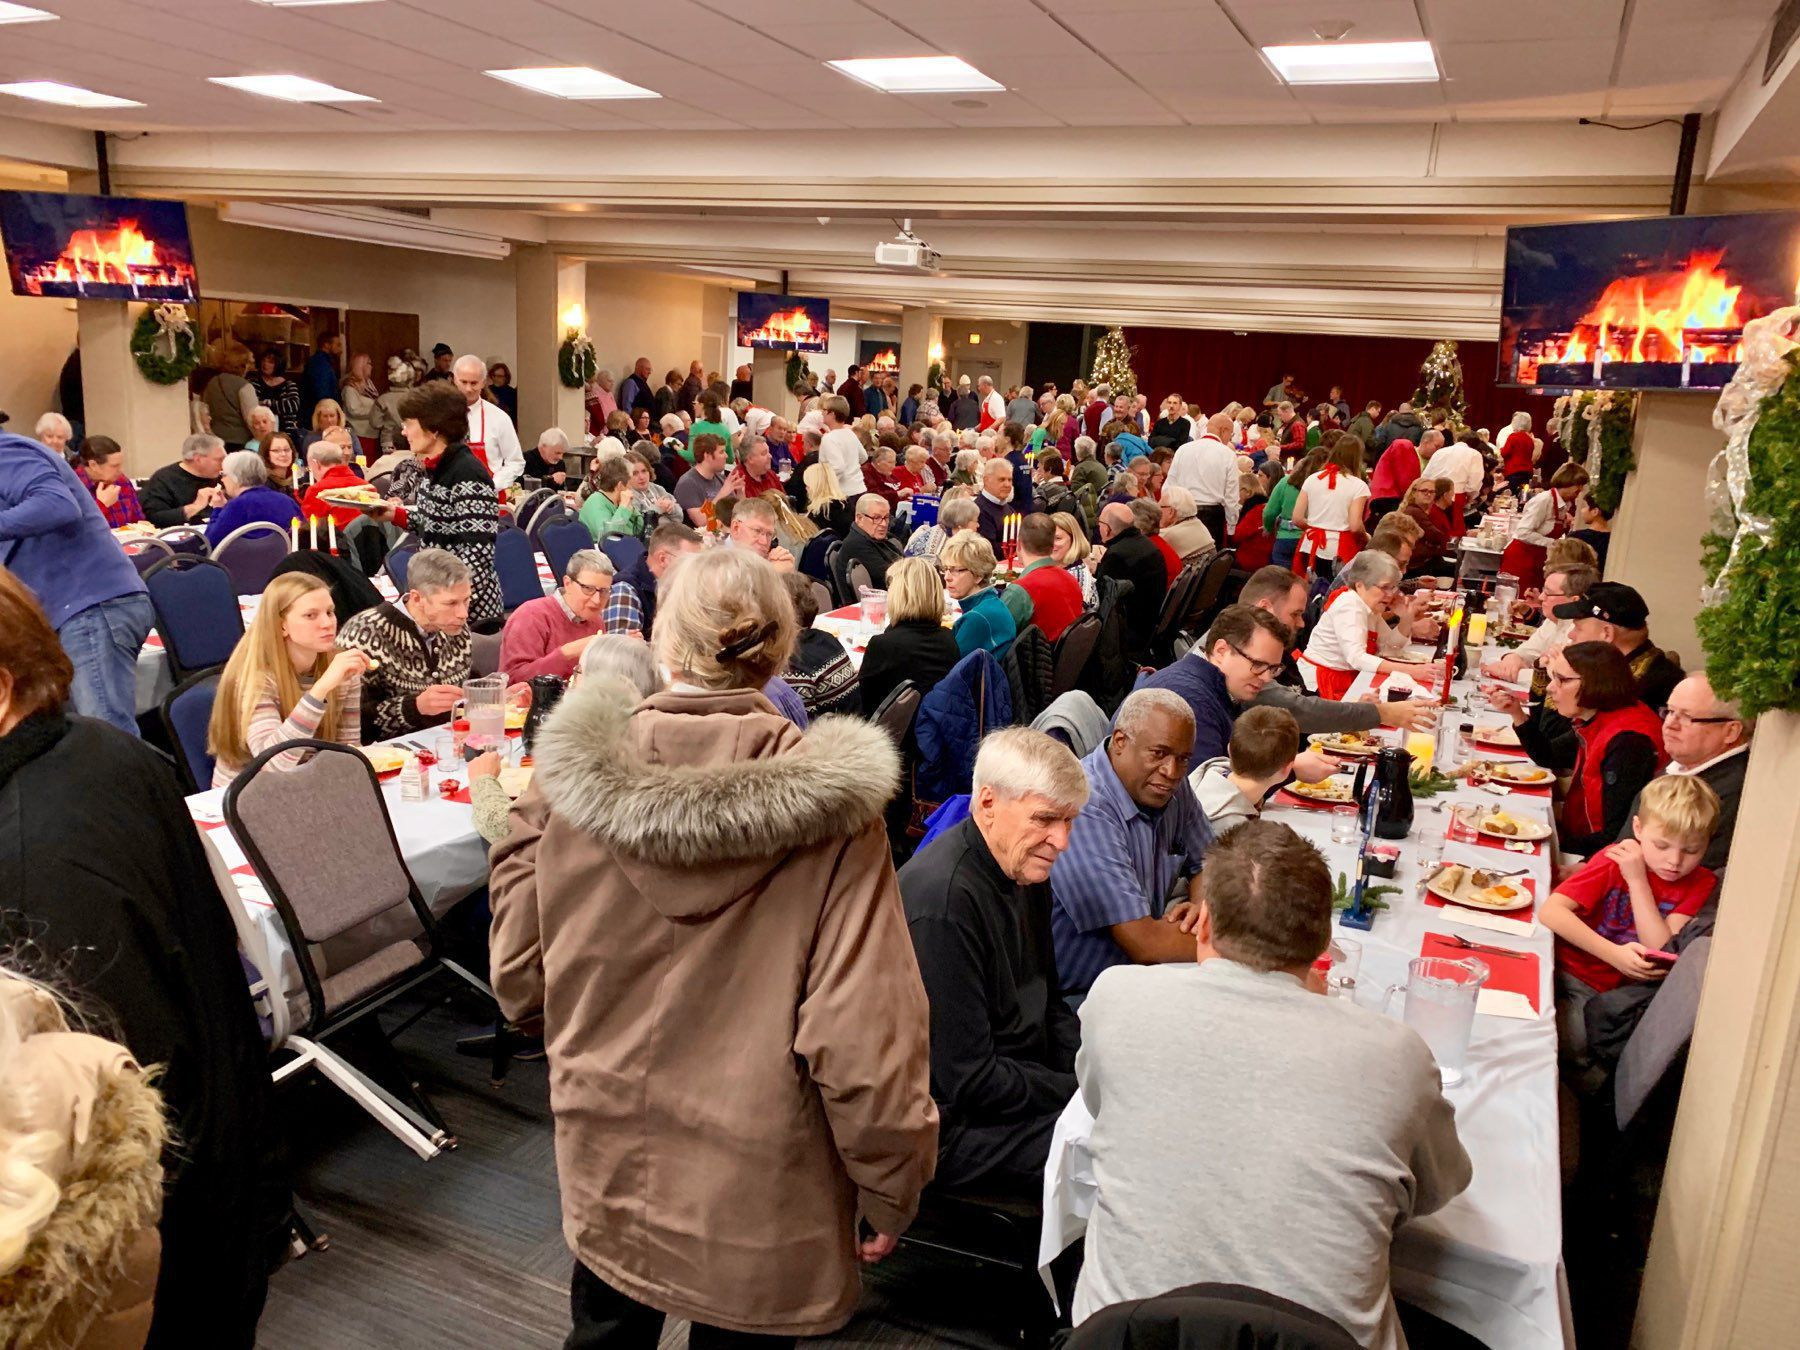 Big Crowd for the Lutefisk Dinner